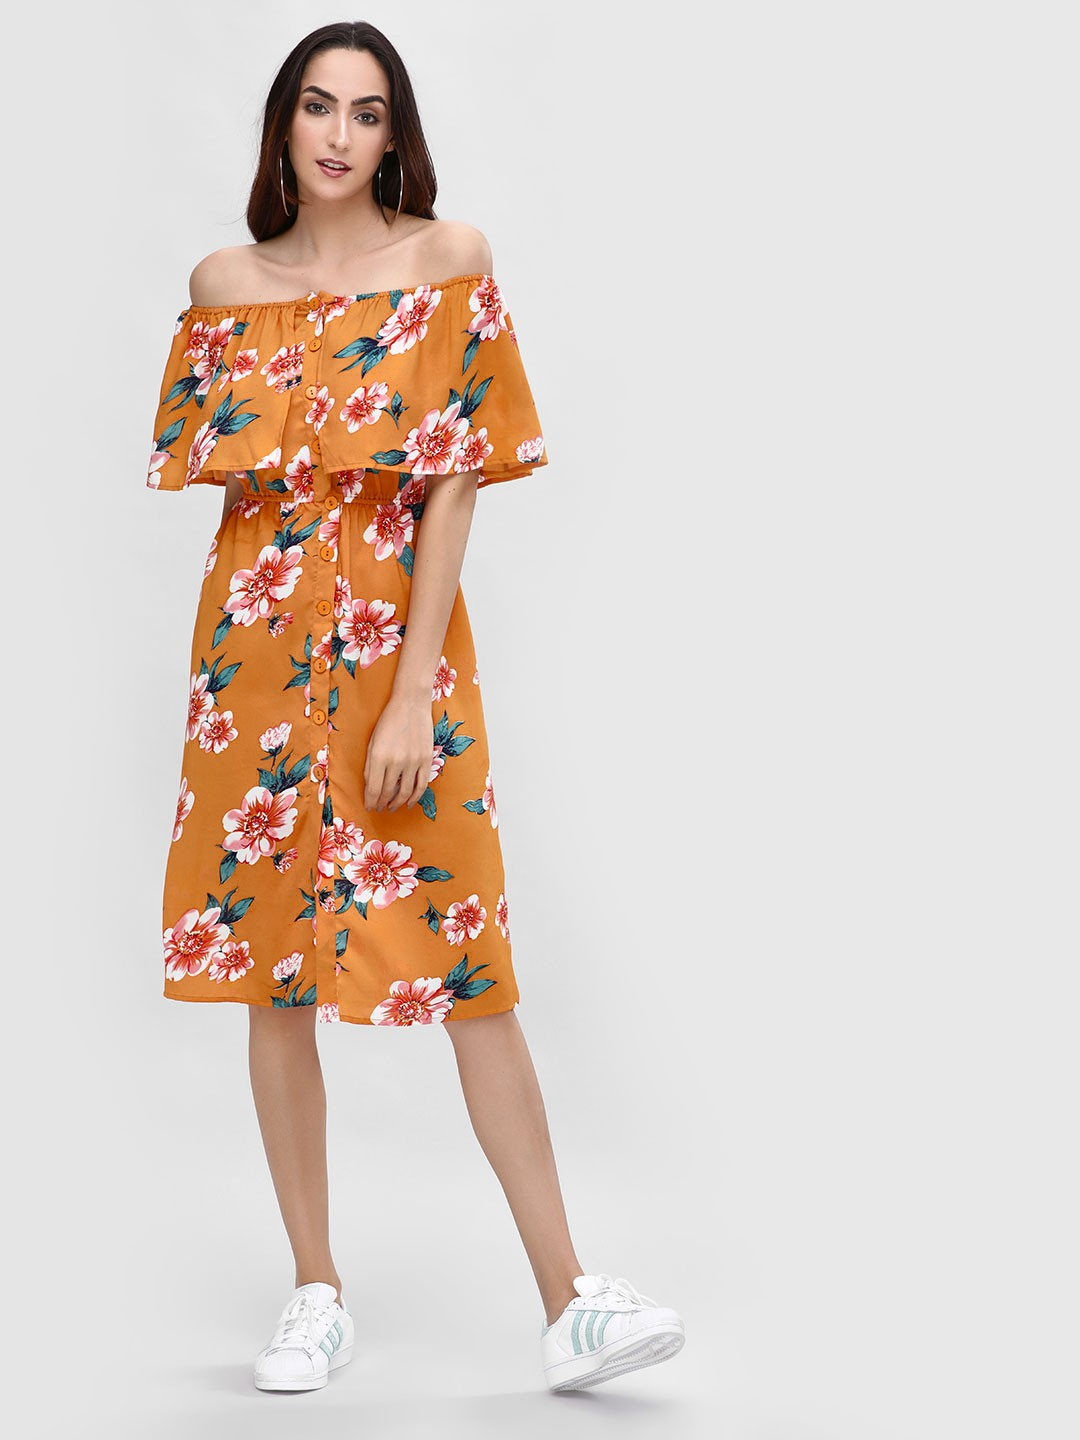 Rena Love Print Off Shoulder Printed Dress 1